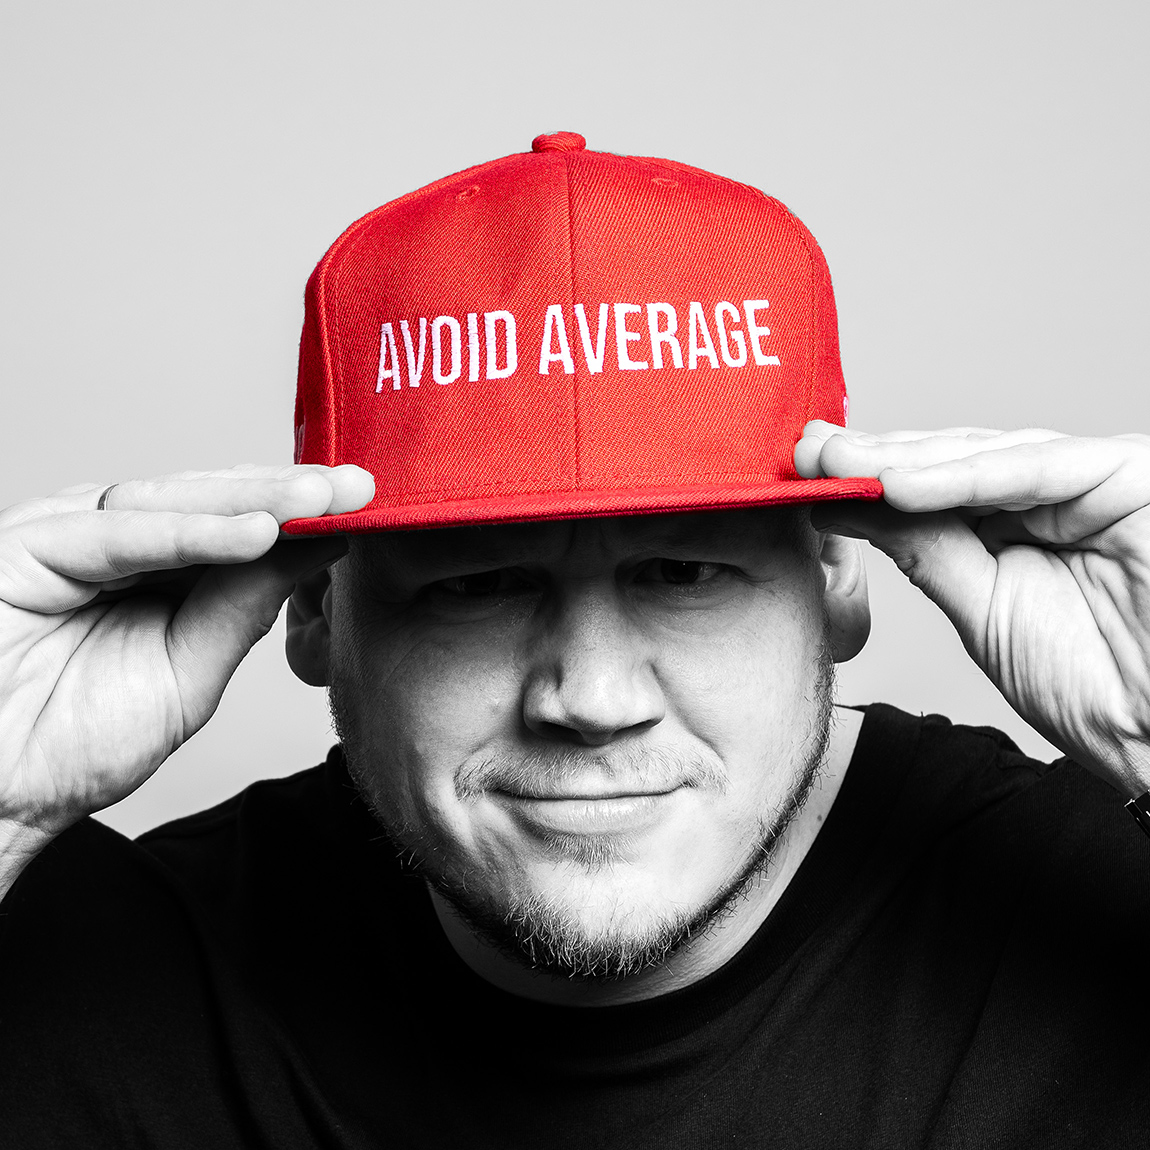 Avoid Average